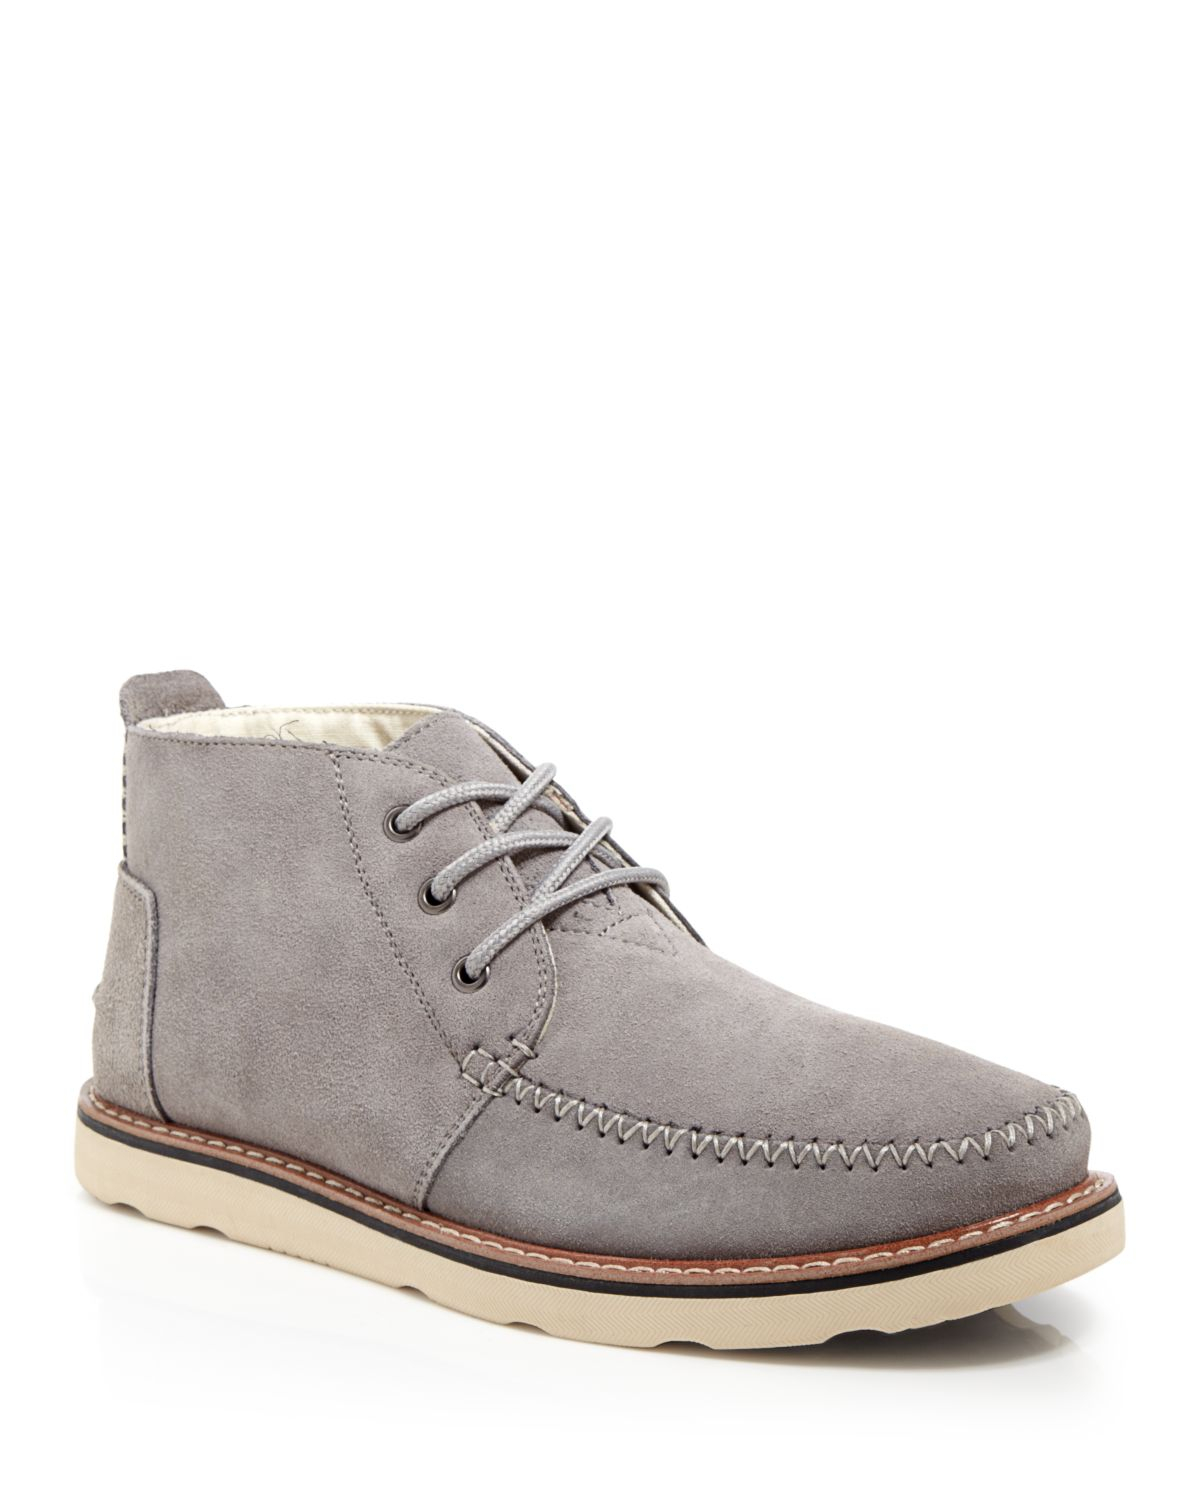 9a047cf7acb Toms Suede Chukka Boots in Gray for Men